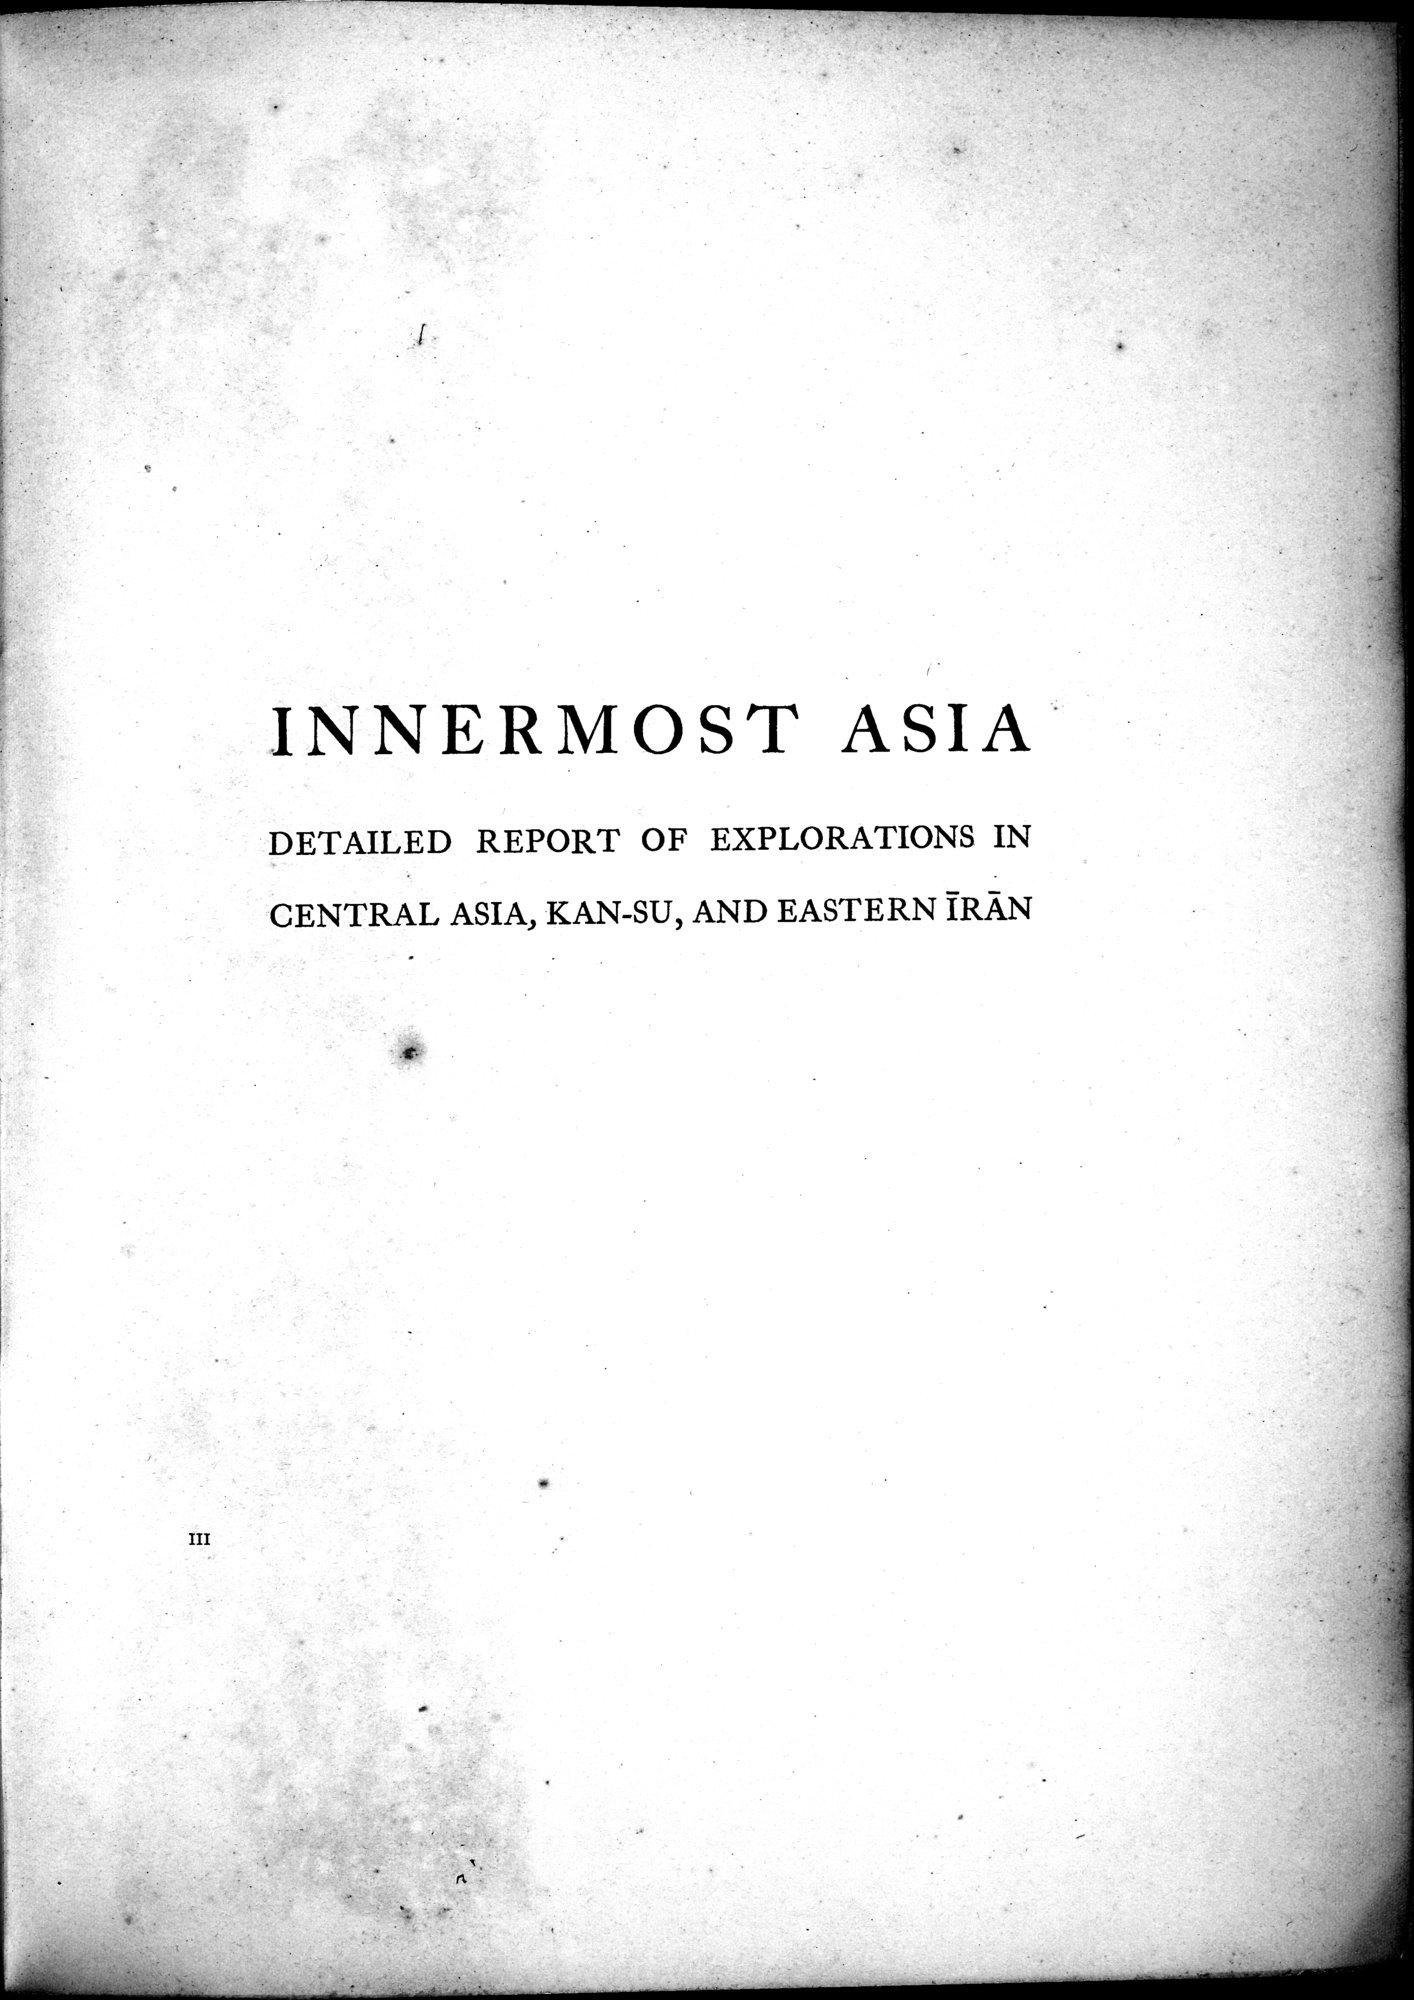 Innermost Asia : vol.3 / Page 5 (Grayscale High Resolution Image)